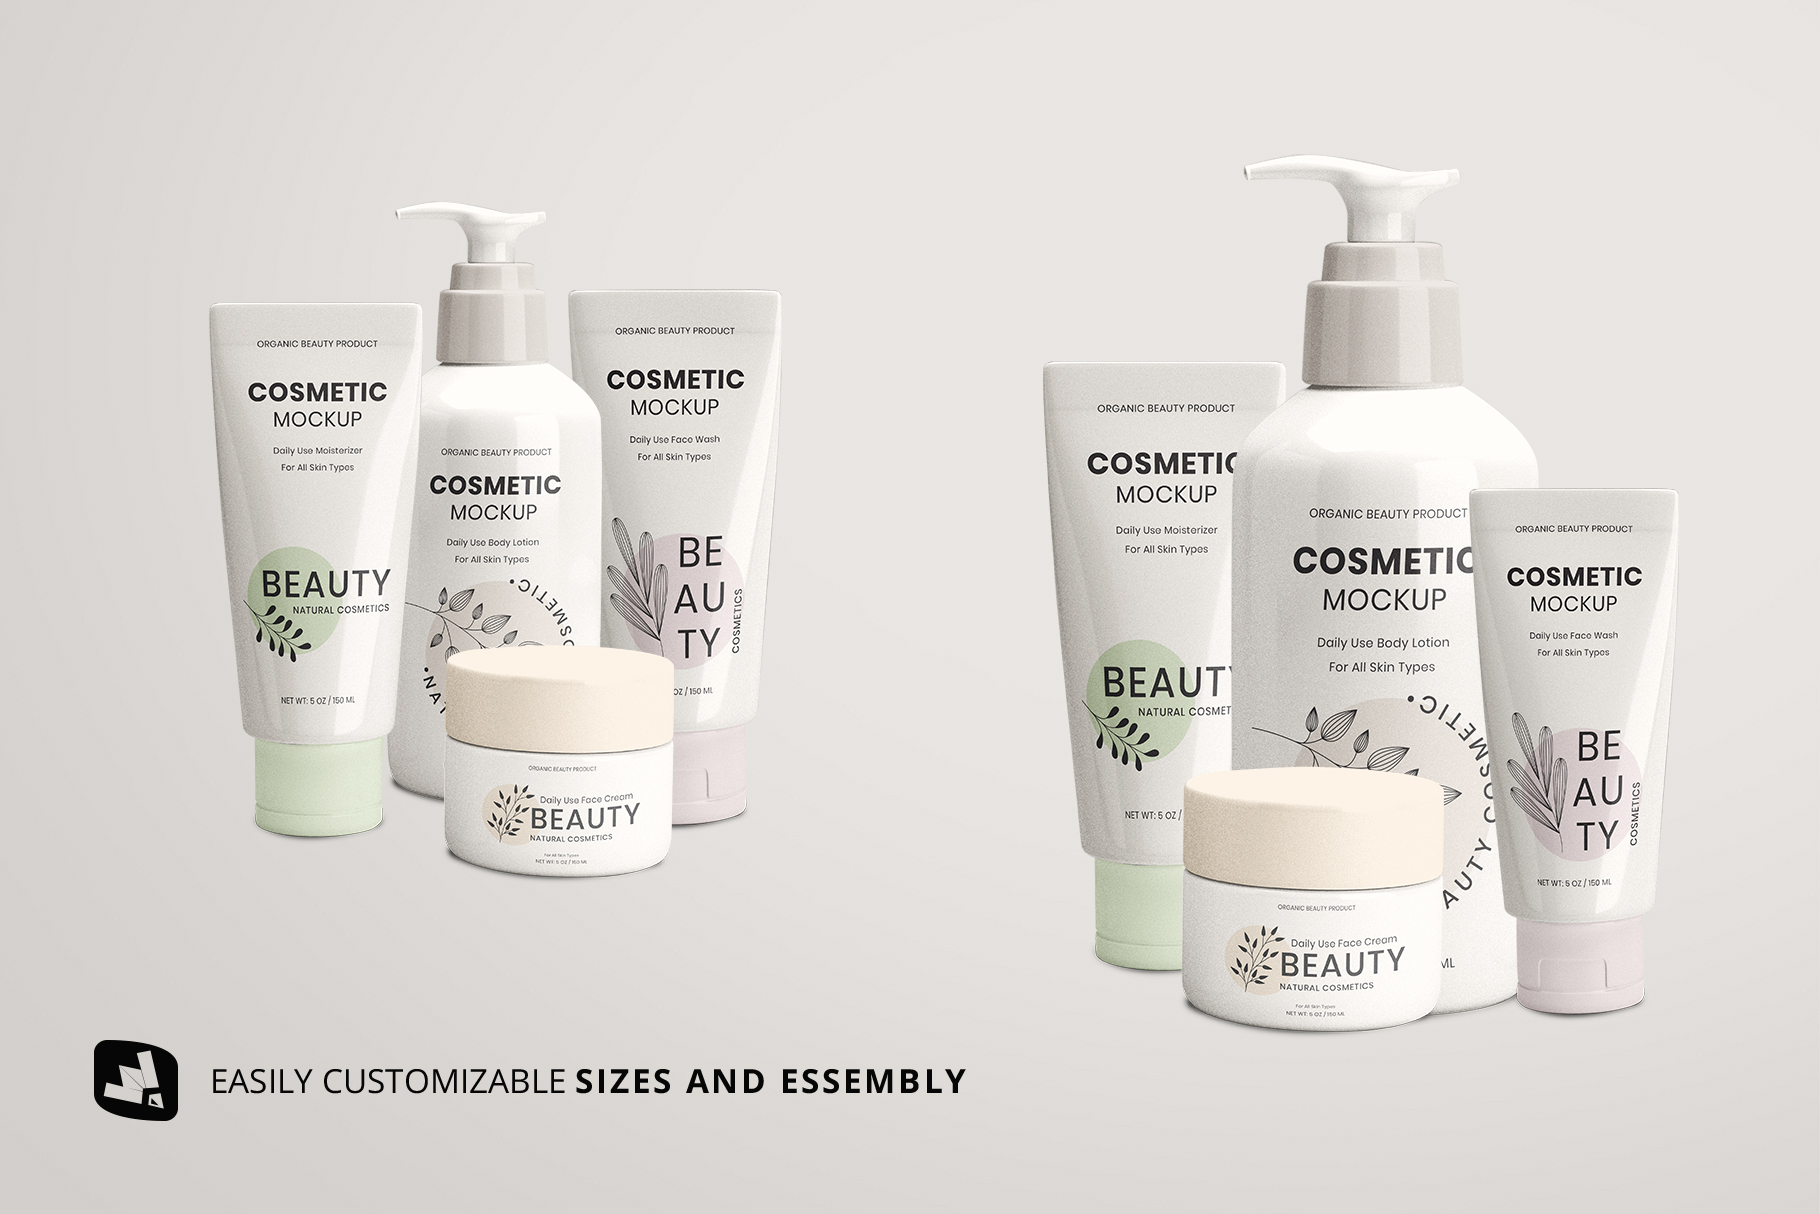 customizable size and essembly of the beauty product packaging set mockup